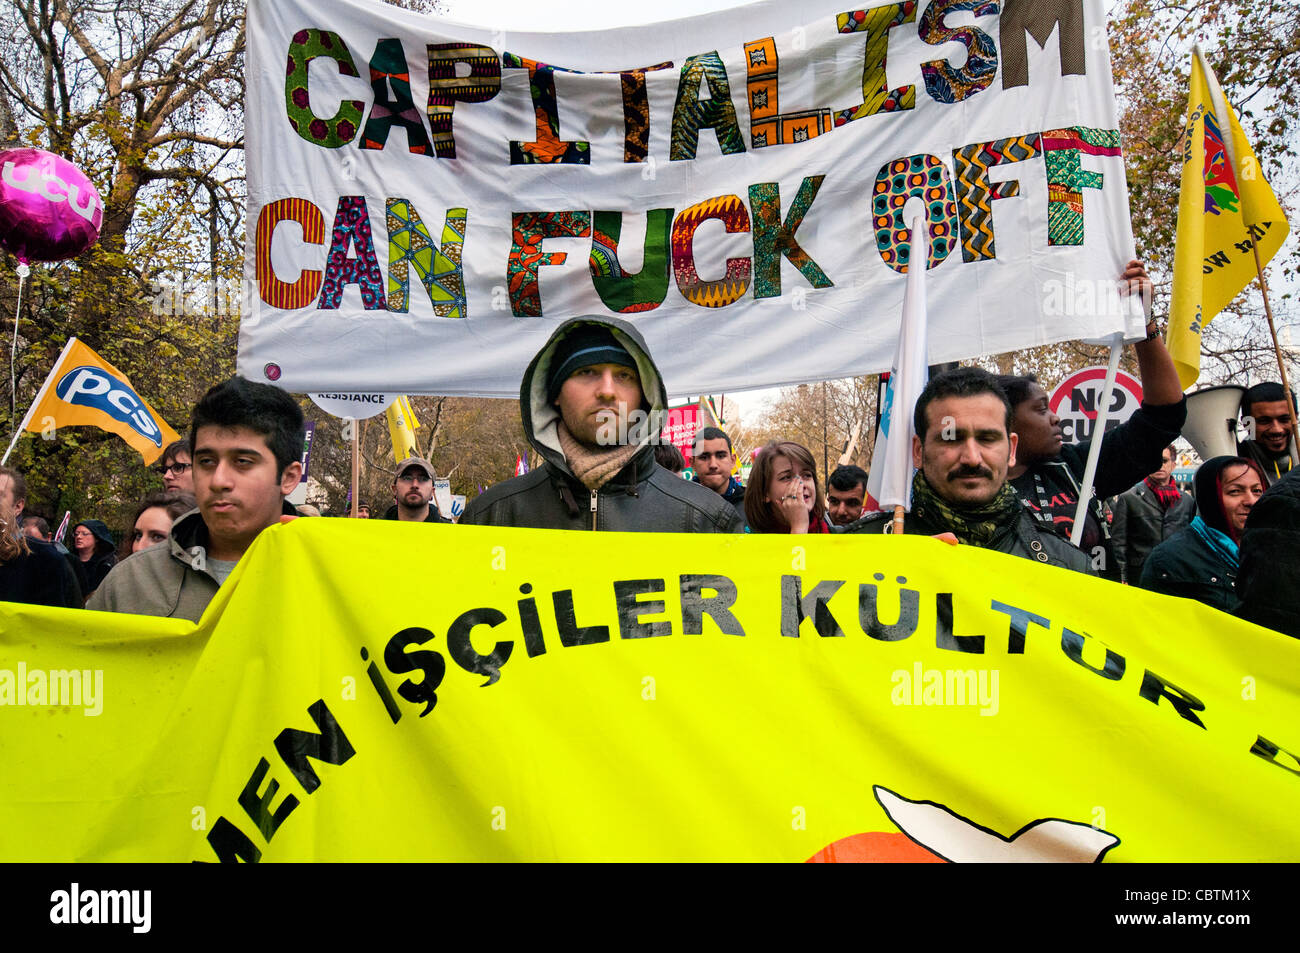 Strikers protest against government  pension reforms in Britain's first mass strike in 30 years. London,  UK. - Stock Image